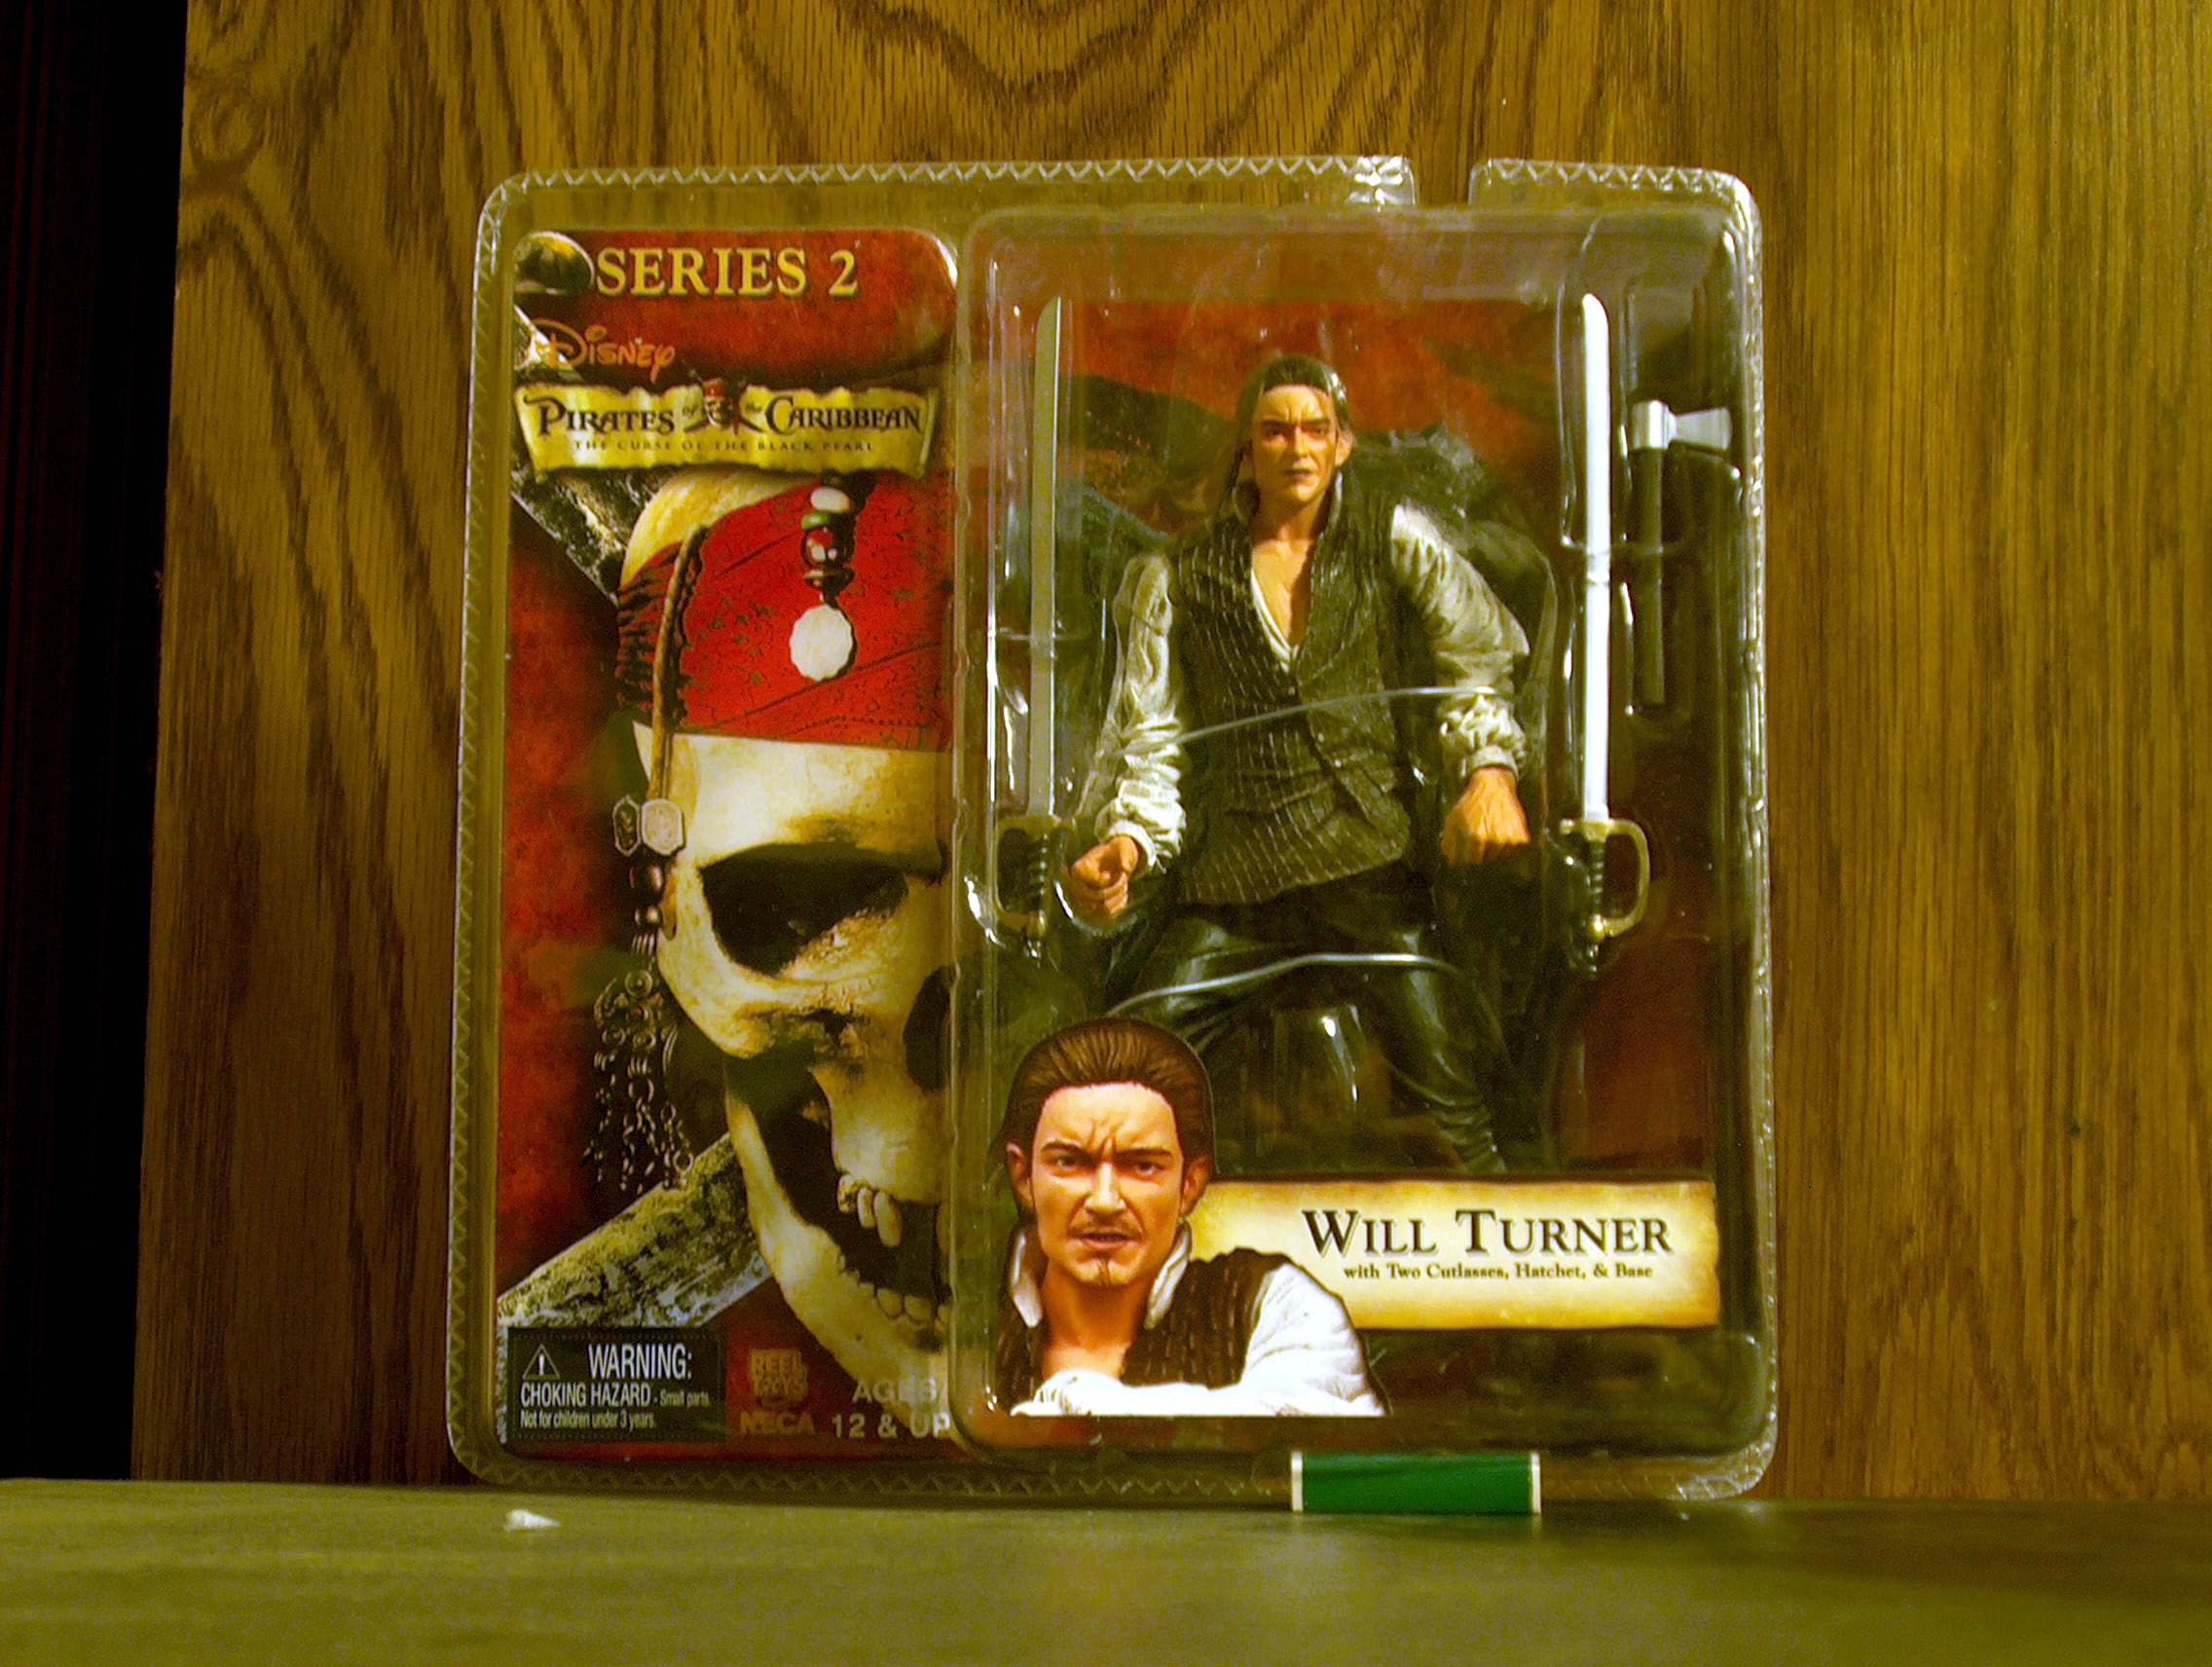 Will Turner with Two Cutlasses, Hatchet, & Base